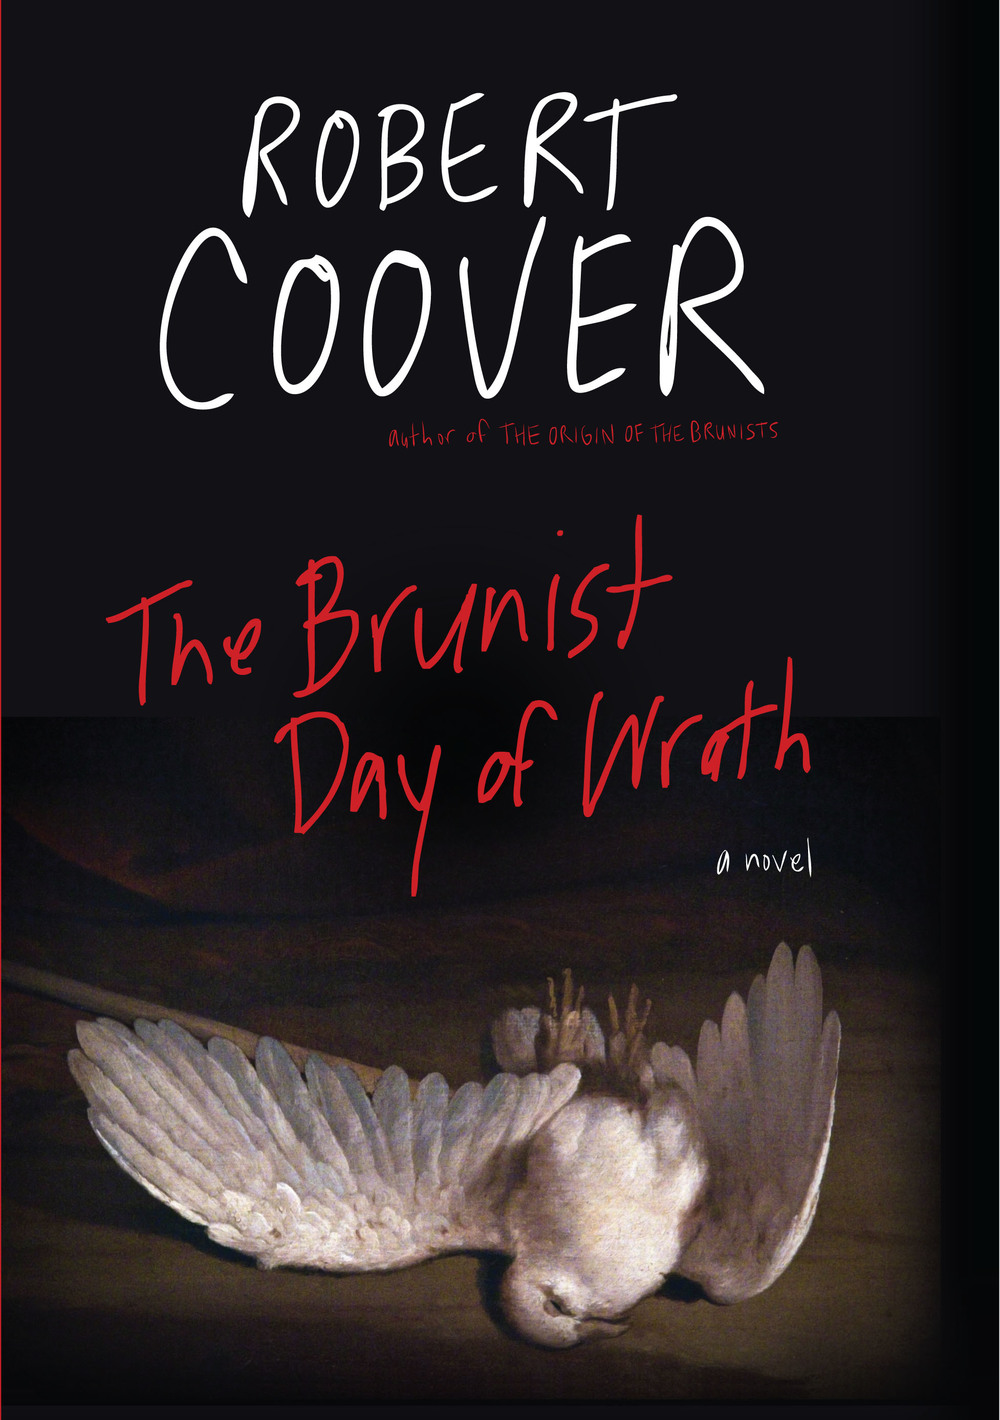 Brunist Day of Wrath_Robert Coover.jpg